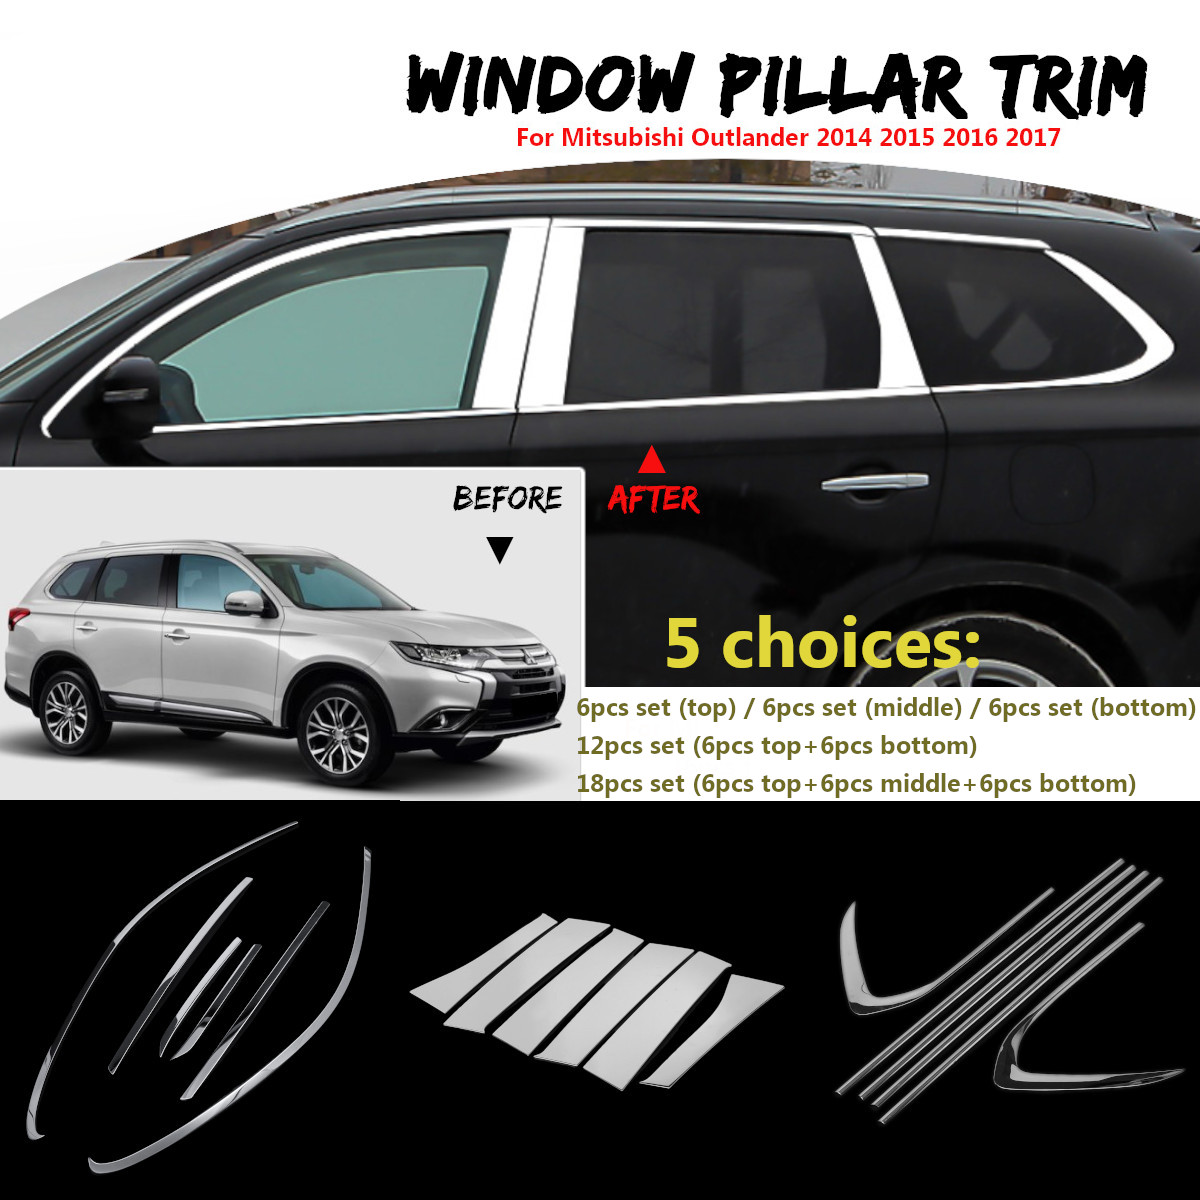 Car Window Pillar Trim Cover Stainless Steel Chrome Decoration for Mitsubishi Outlander 2014 2015 2016 2017 Car Styling for mitsubishi outlander 2013 2014 2015 2016 car styling door s armrest panel cover decoration trim leather skin